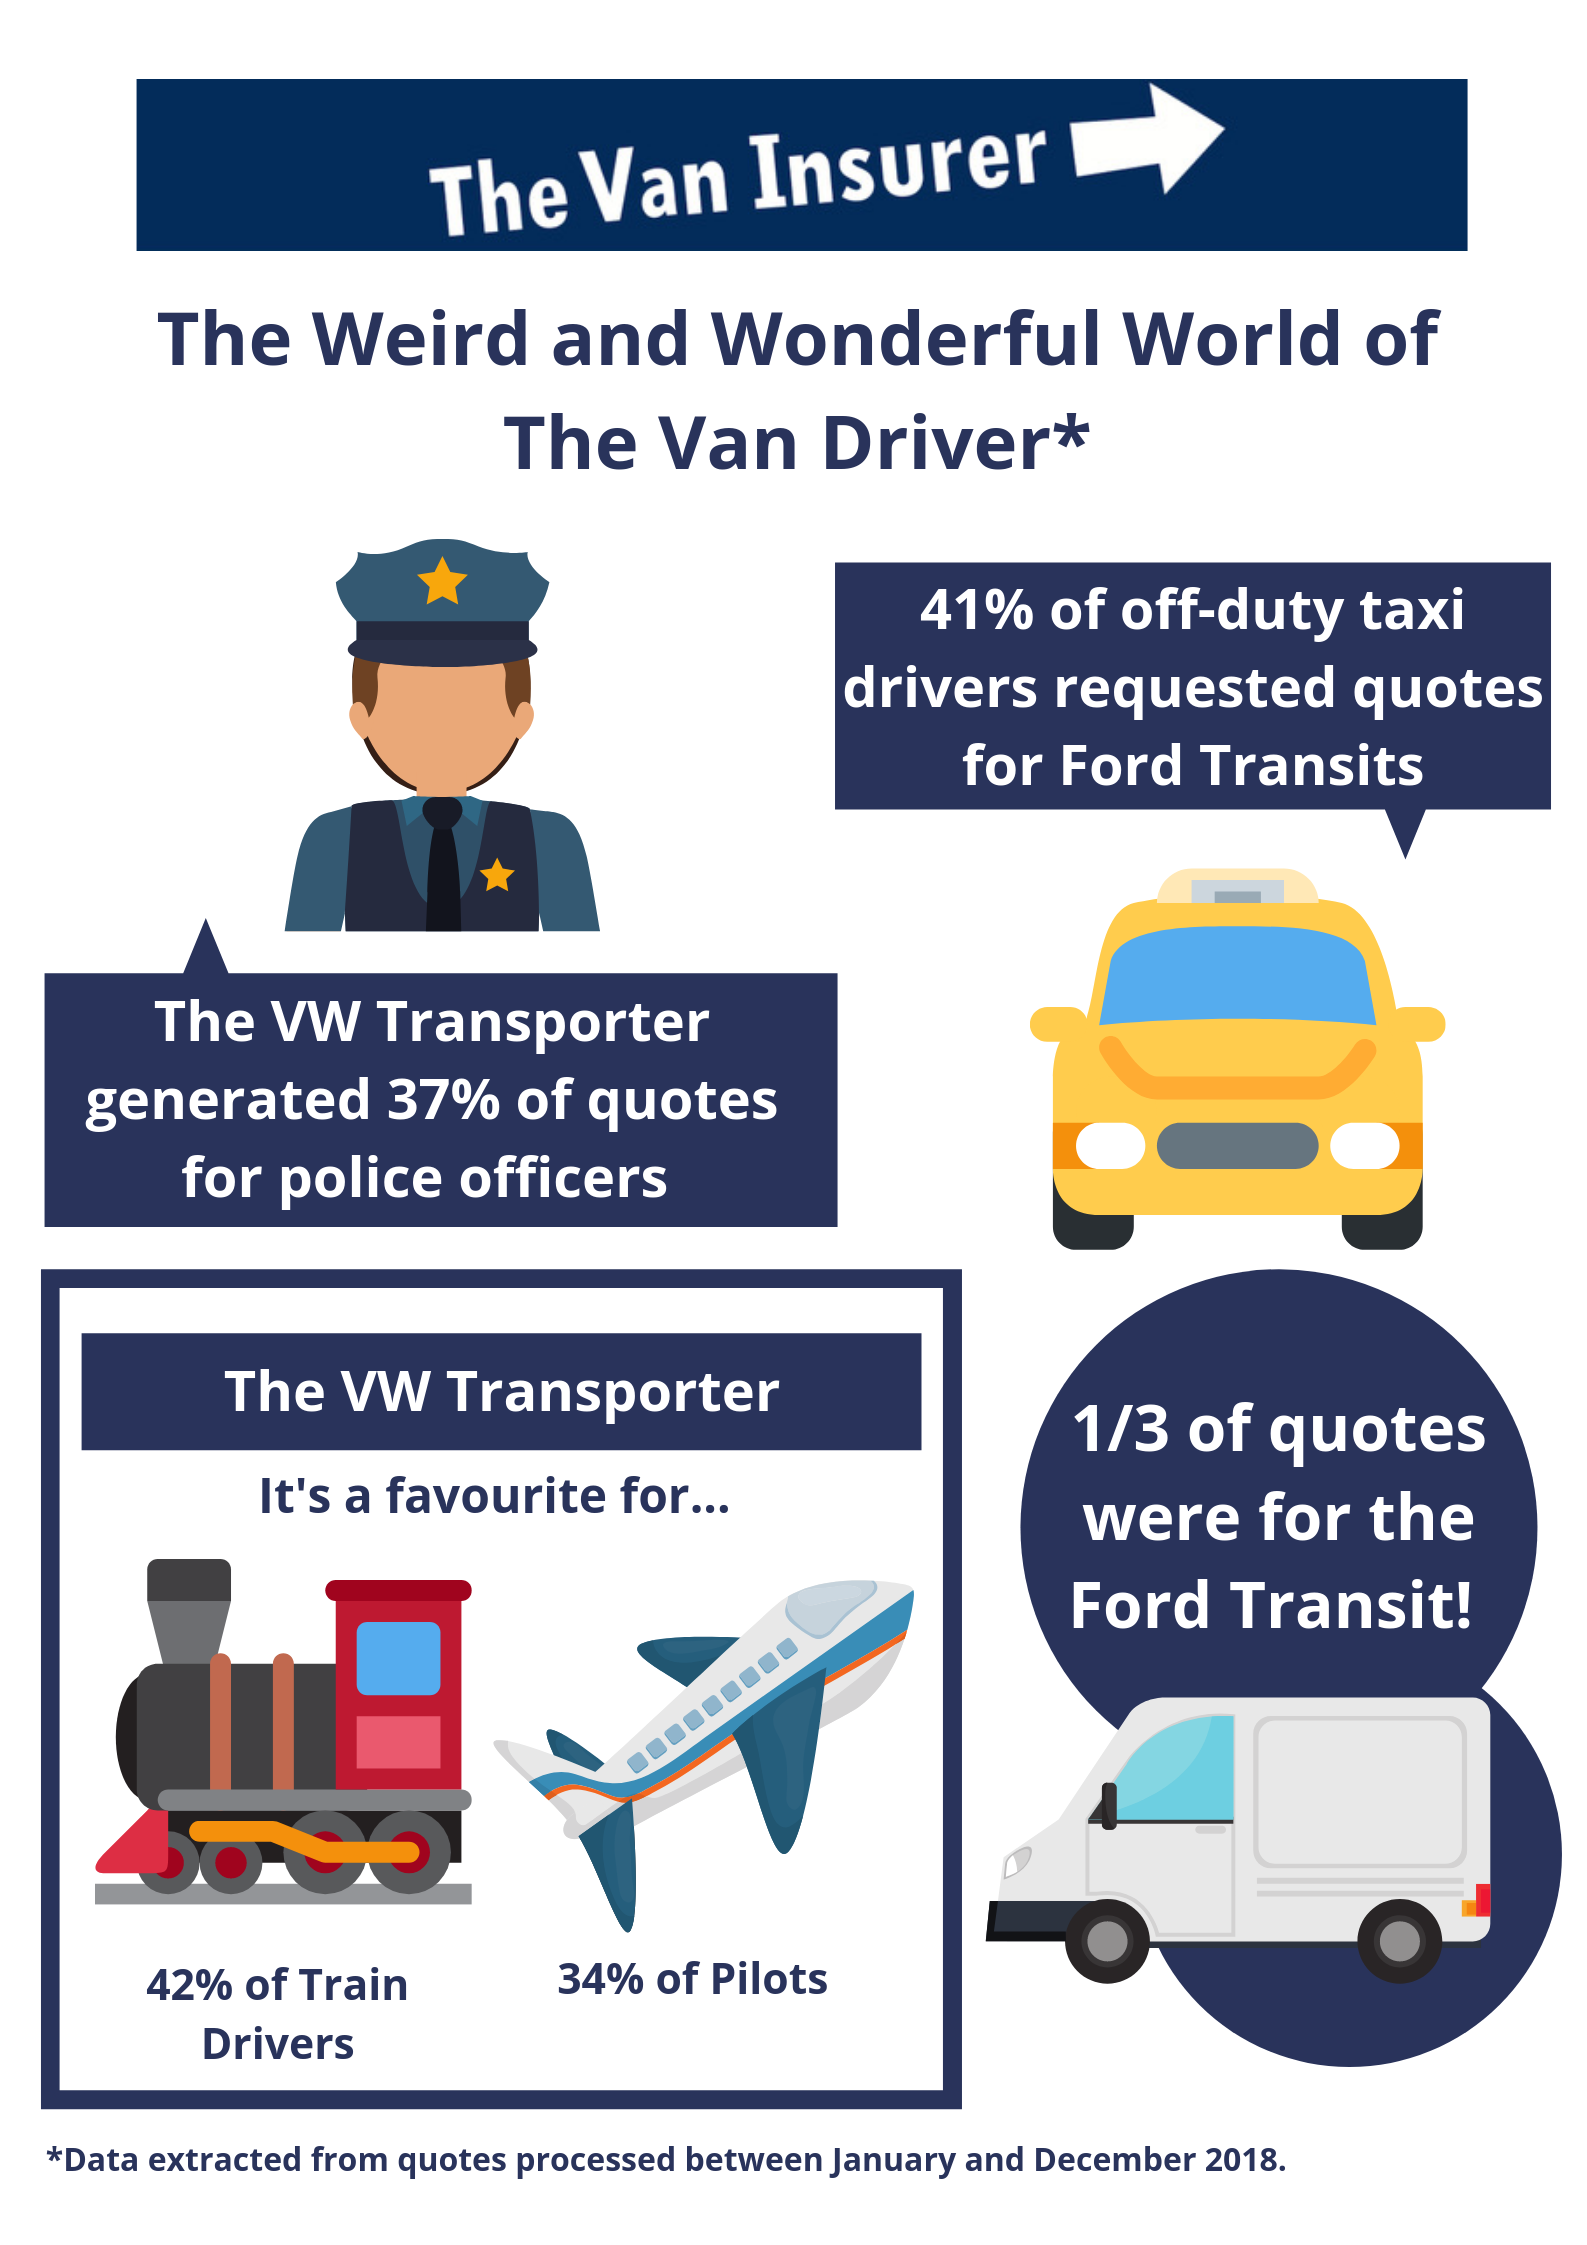 Infographic showing unusual jobs and vans